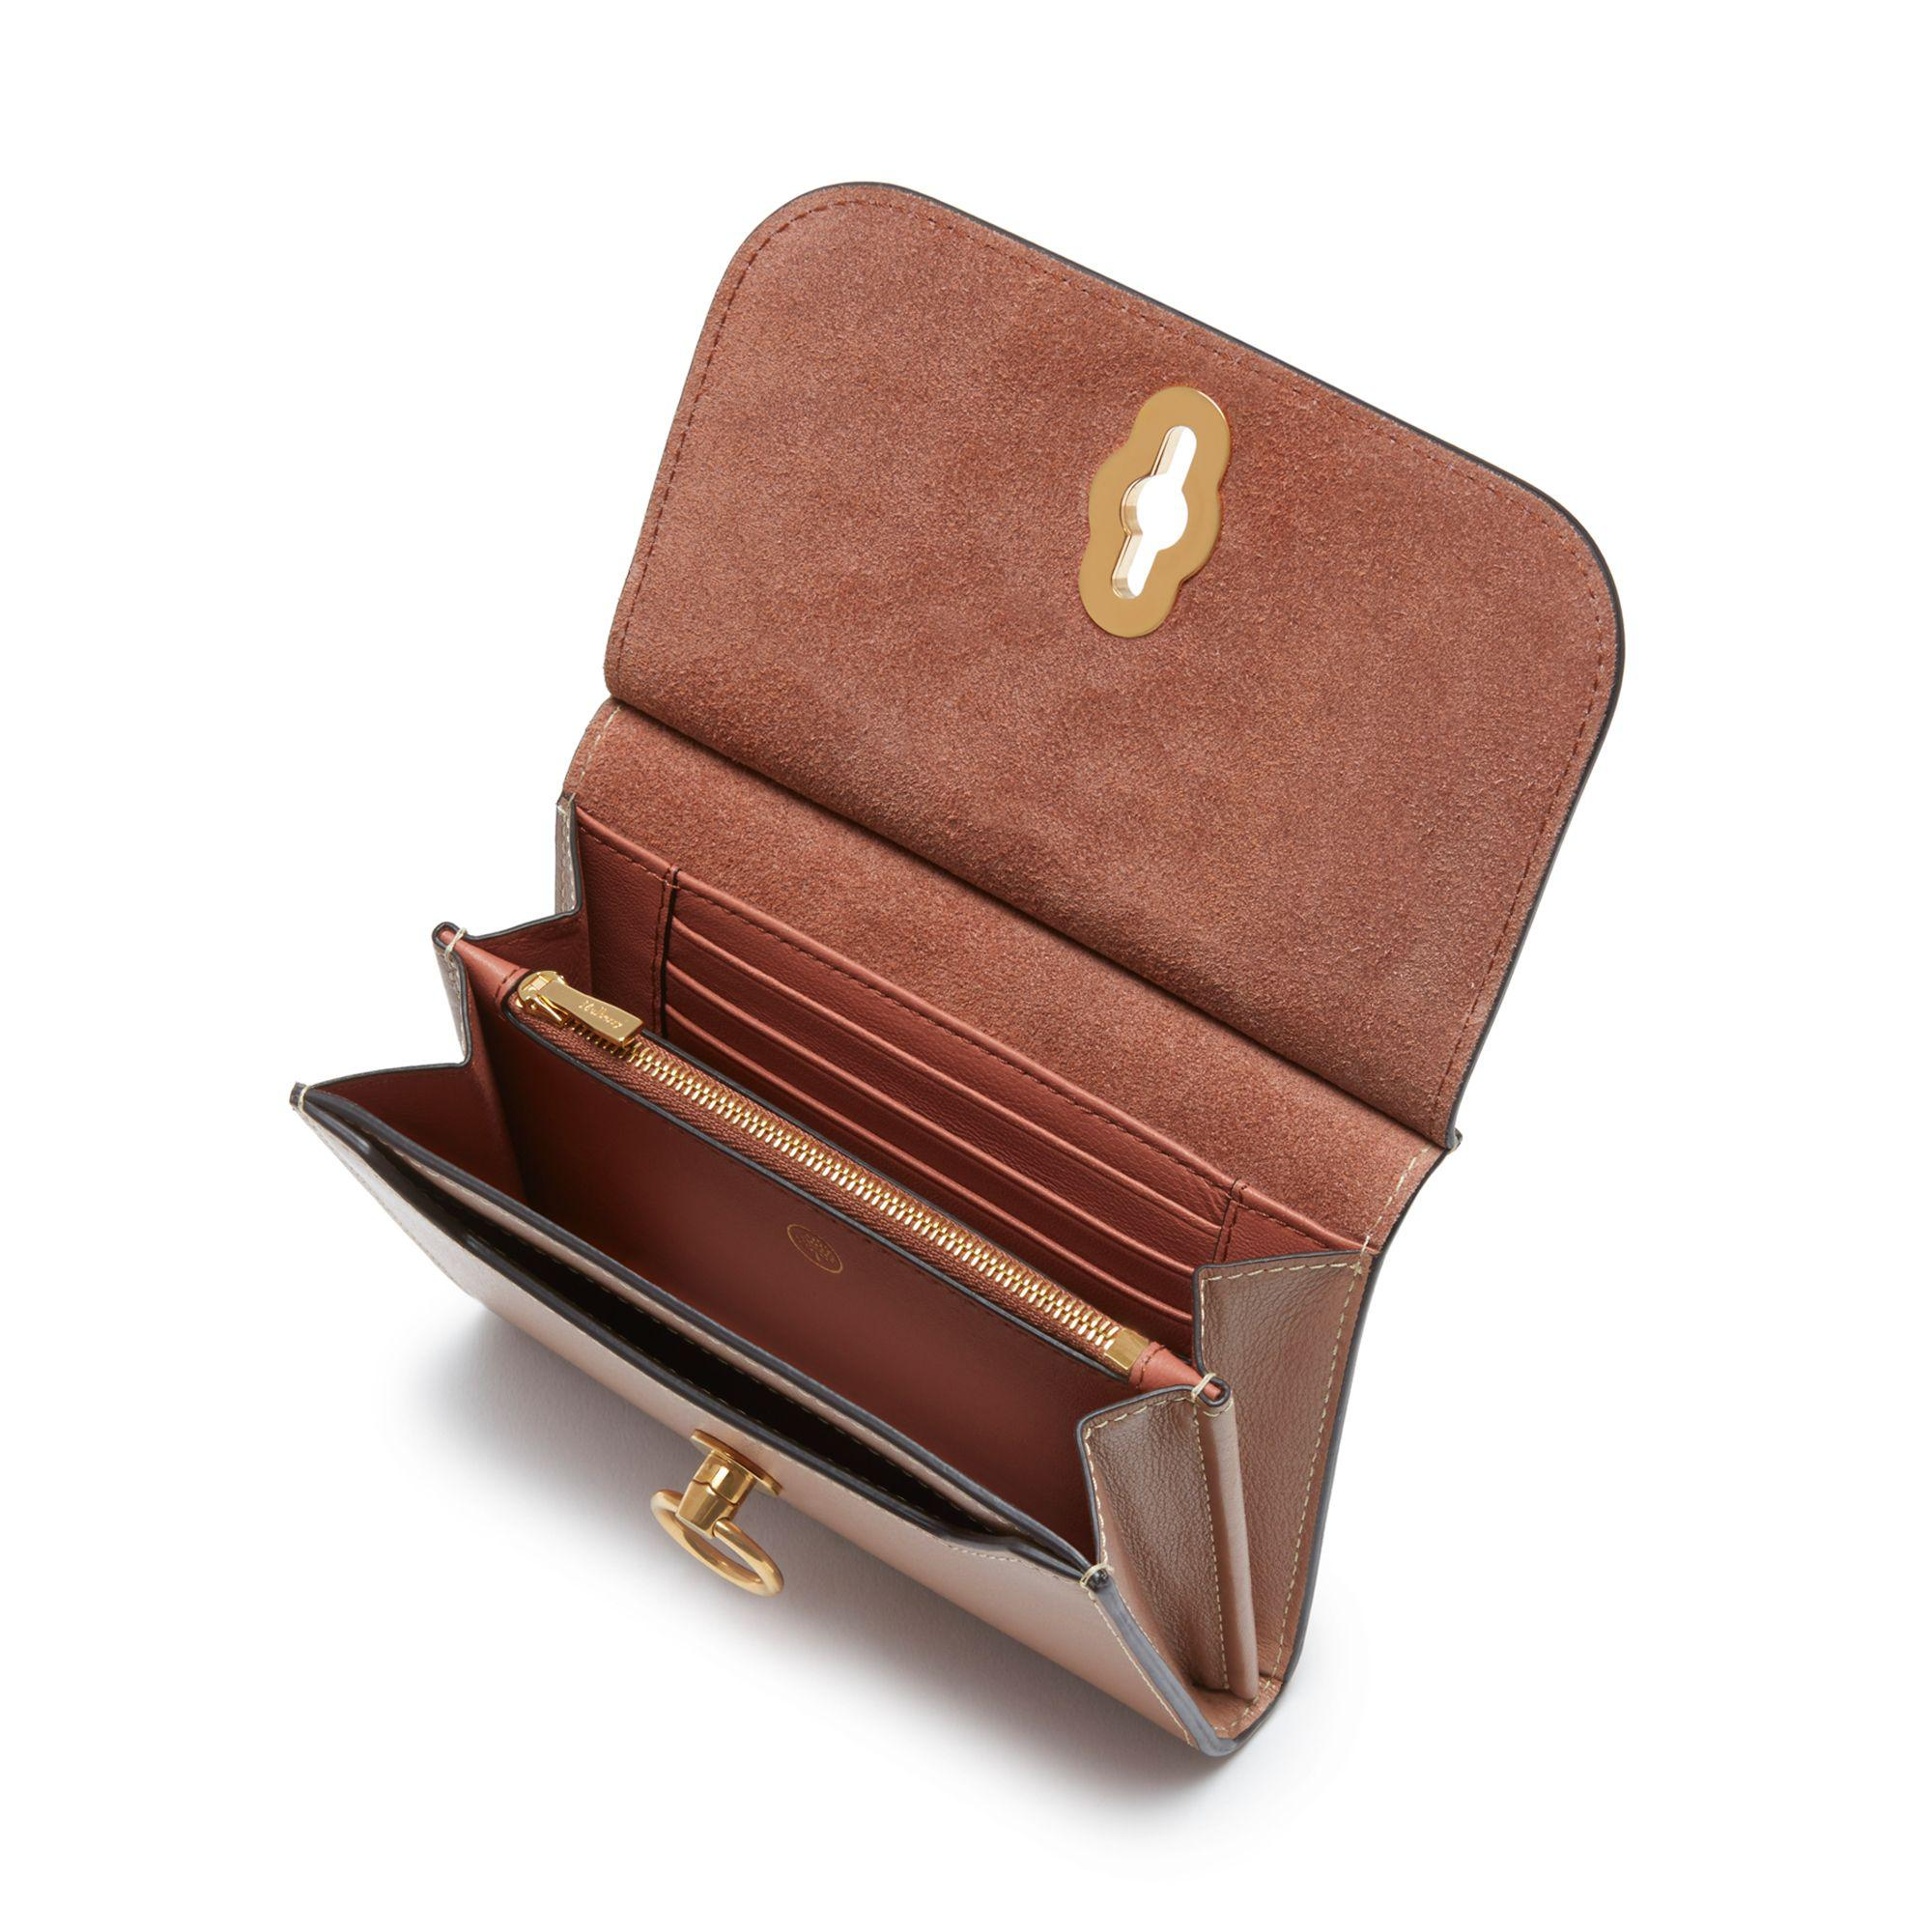 8072a54350e7 ... low cost lyst mulberry amberley medium wallet in brown 62d0d a8750